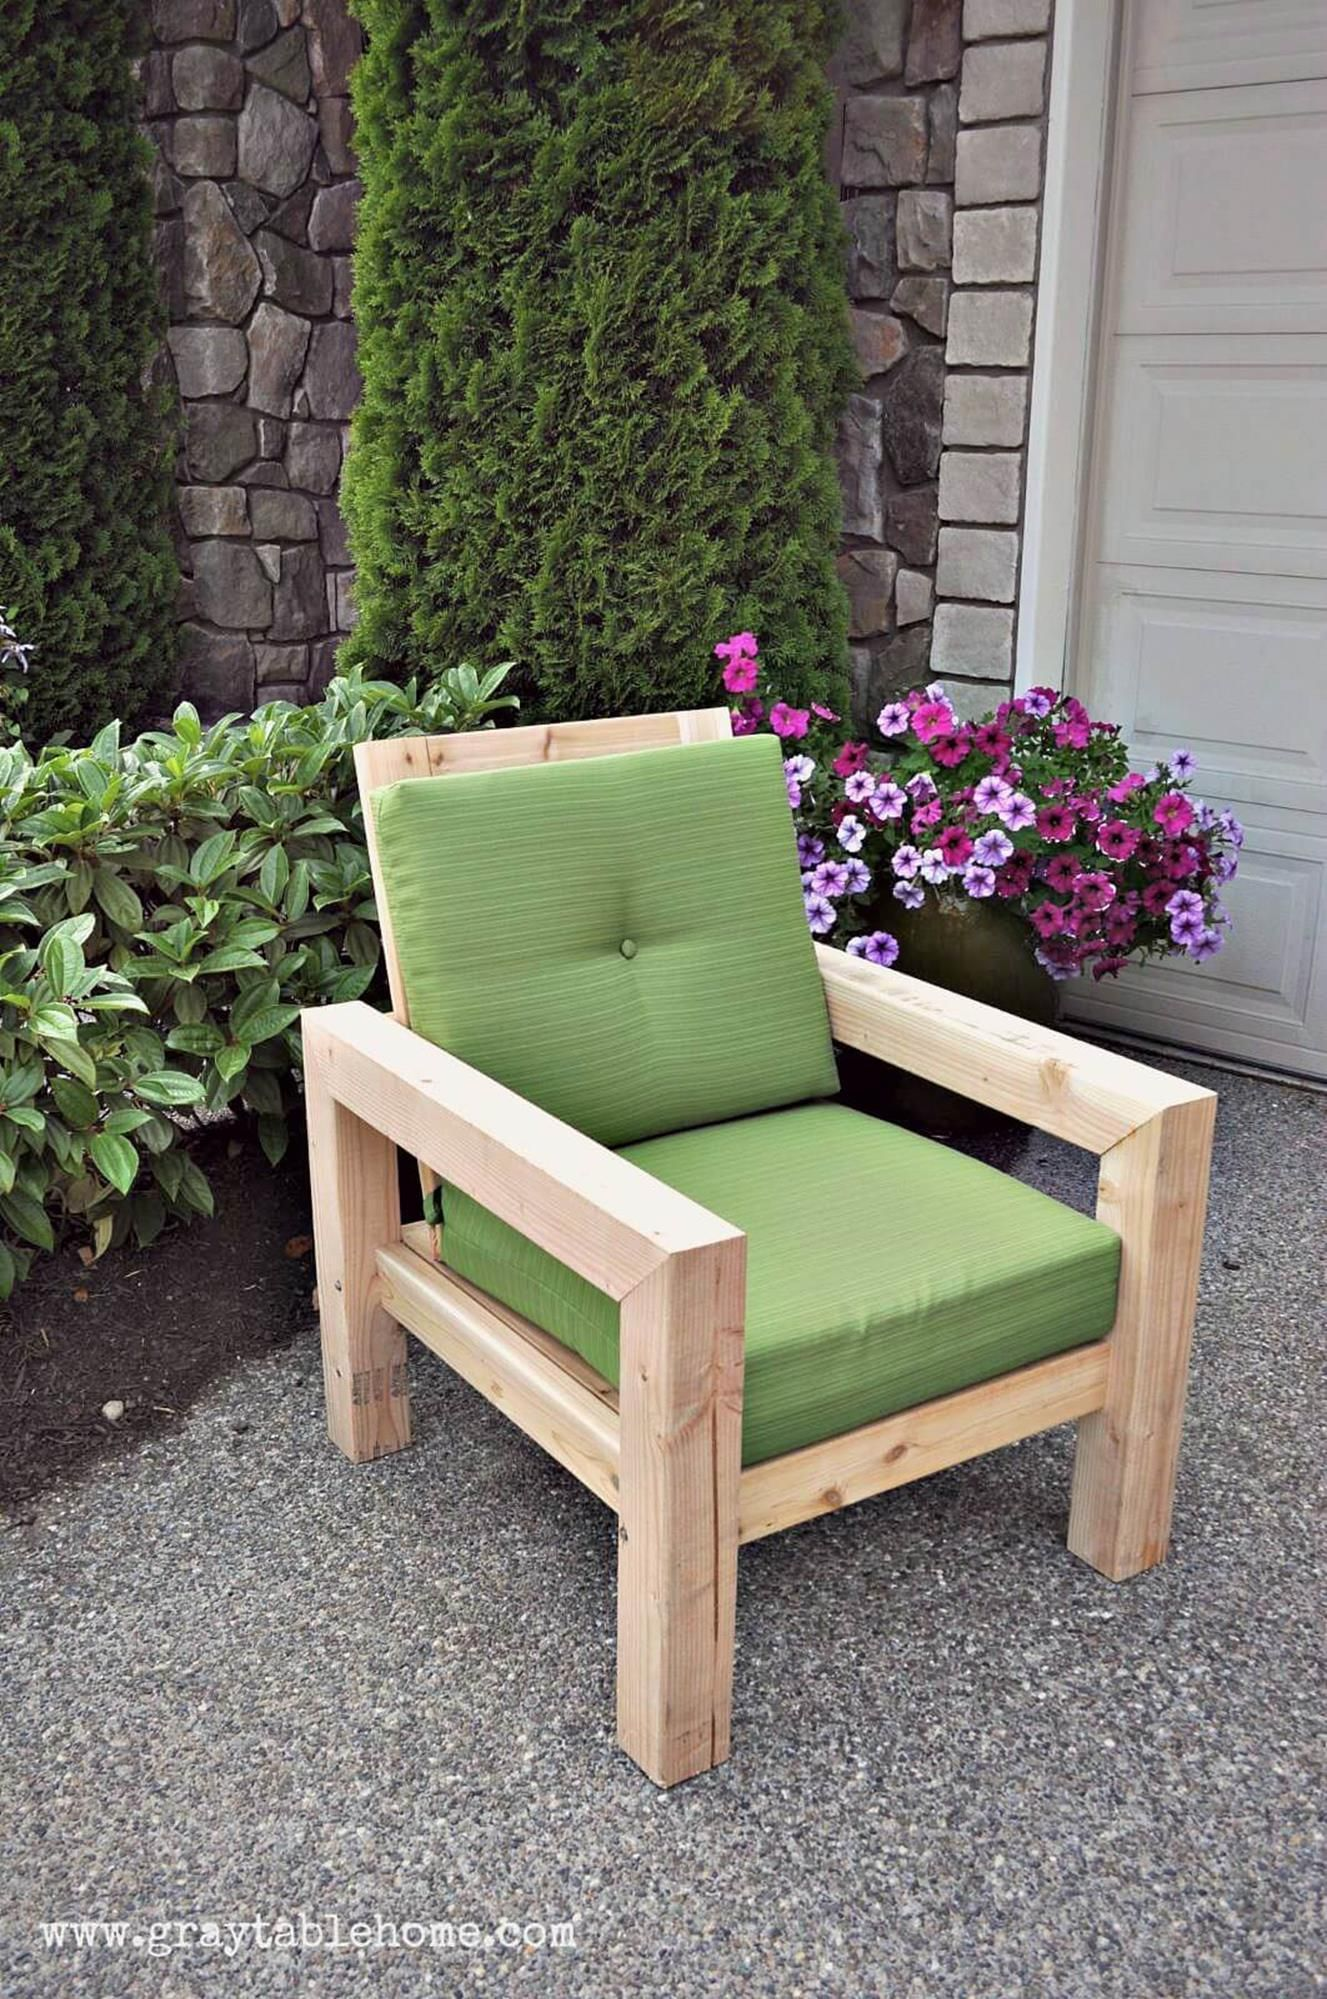 34 Simple and Easy Homemade Porch Furniture Design Ideas – Viral Decoration